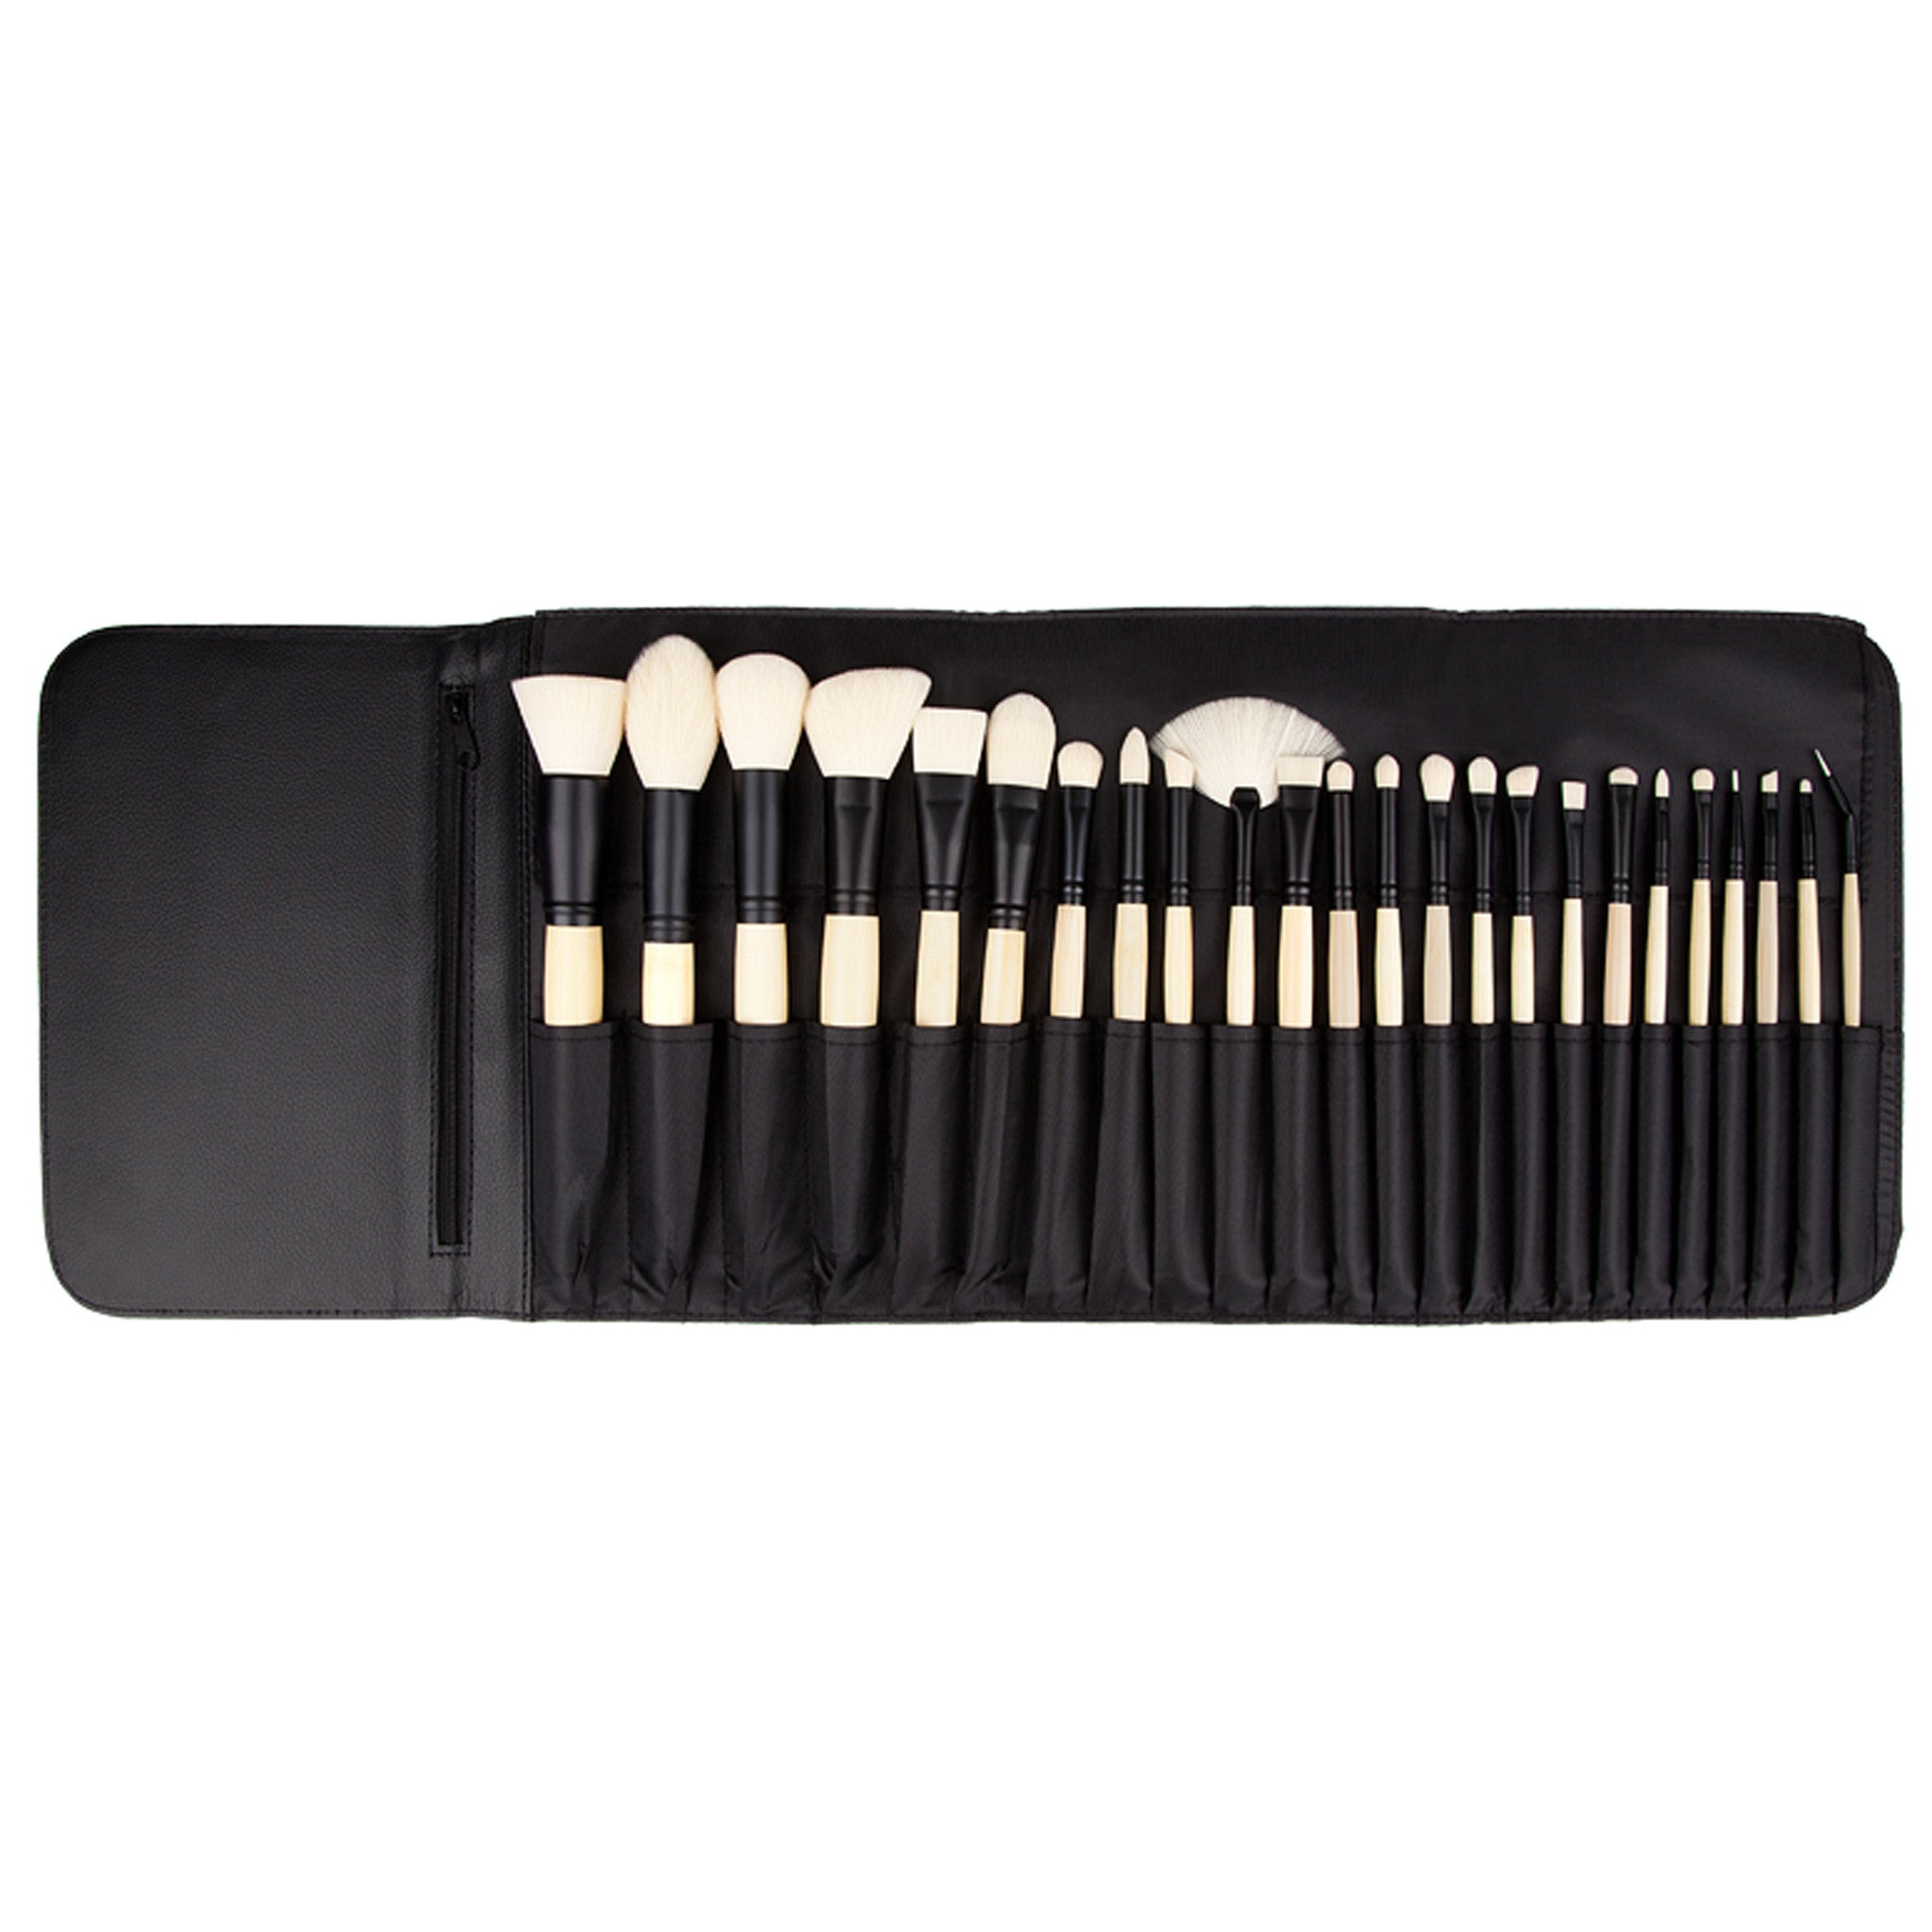 coastal scents brushes. elite brush set coastal scents brushes